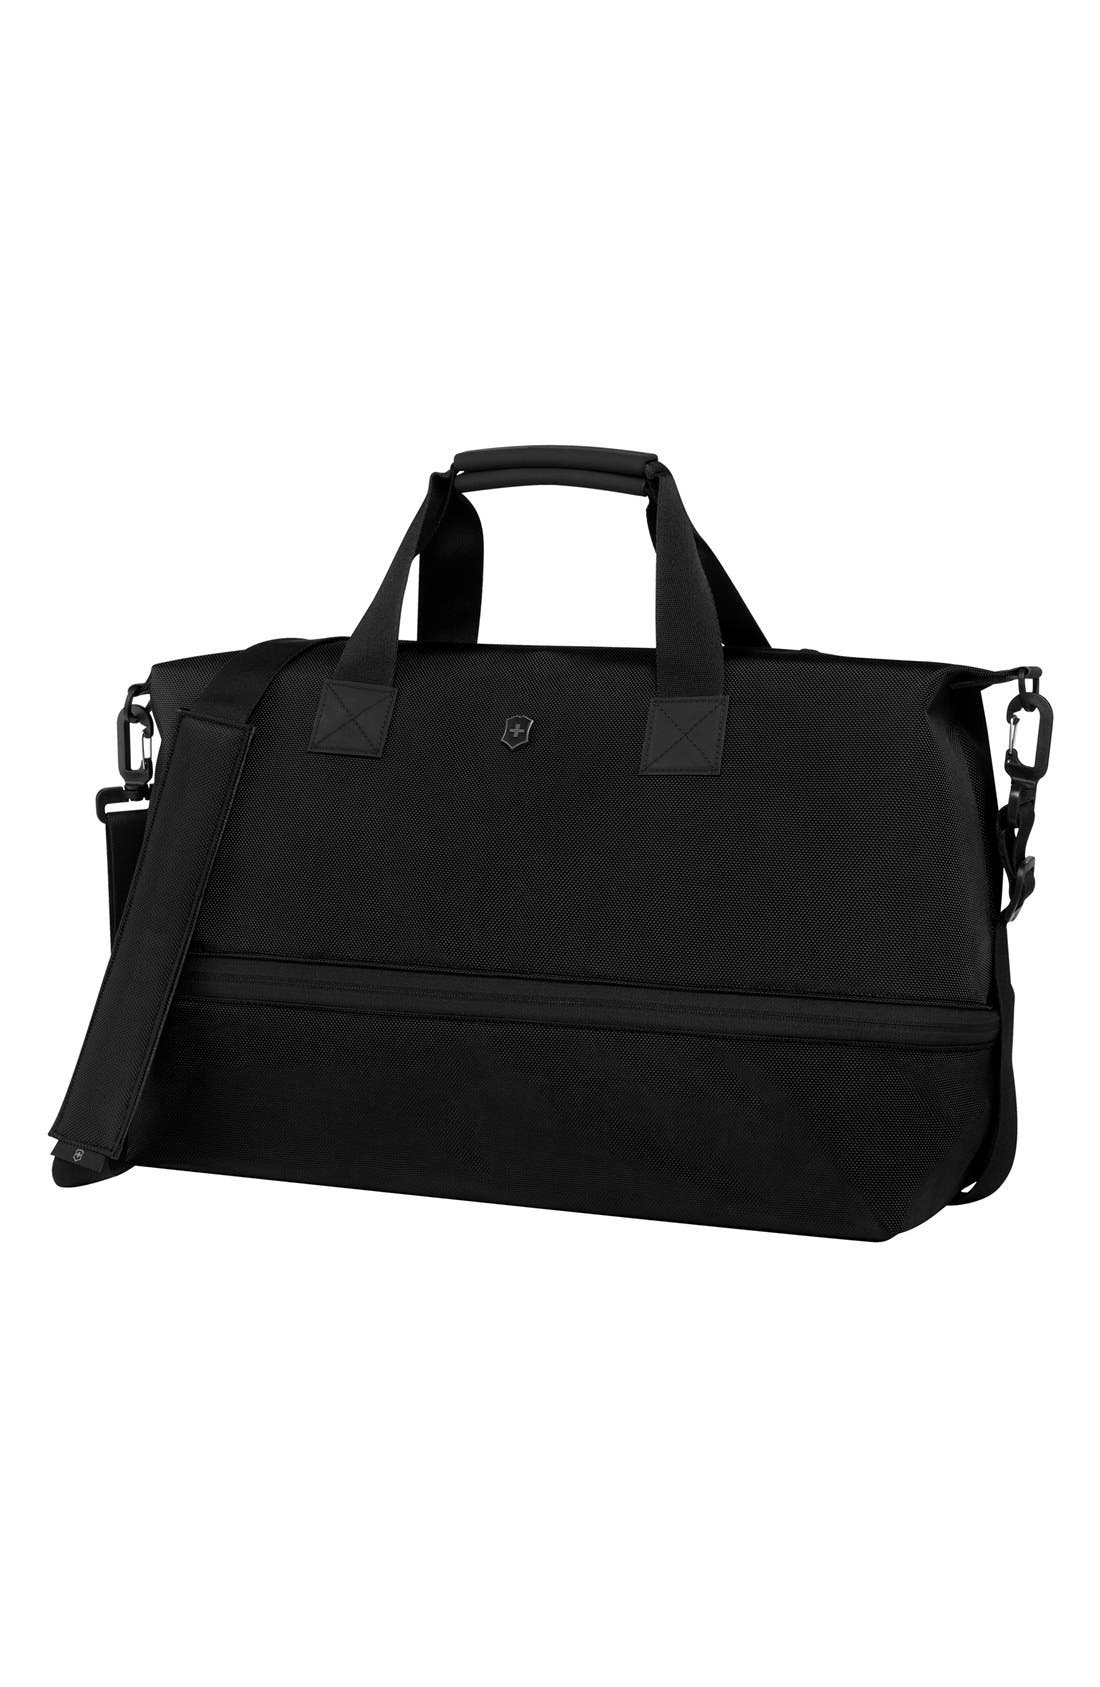 Victorinox Swiss Army® Duffel Bag